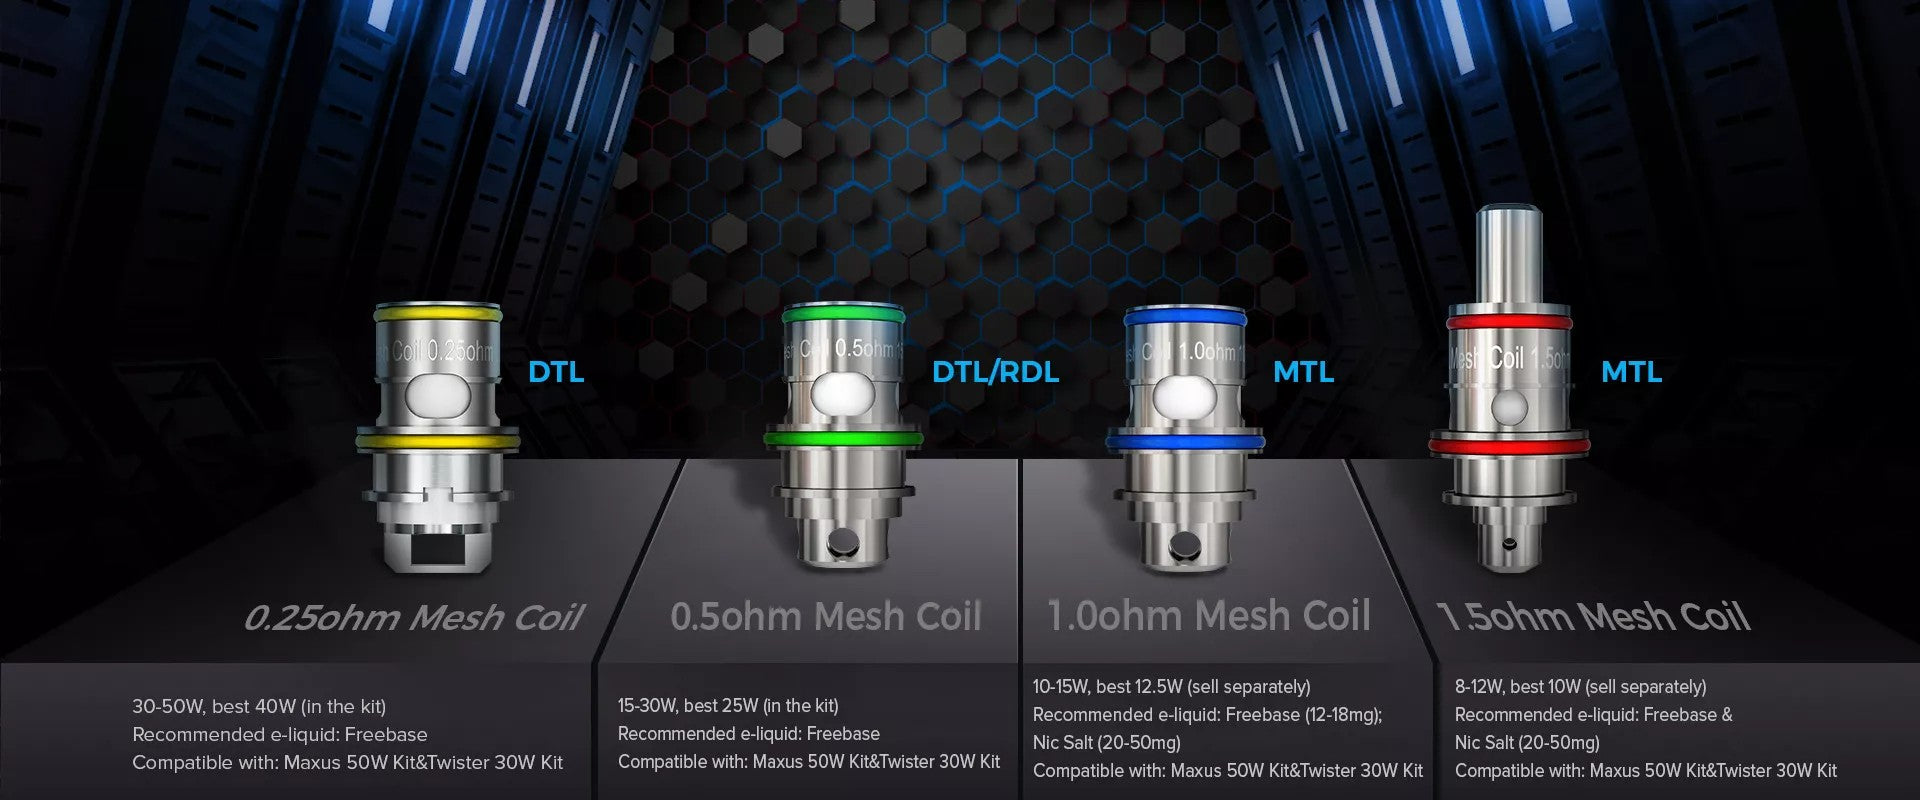 Coil options include both DTL and MTL versions